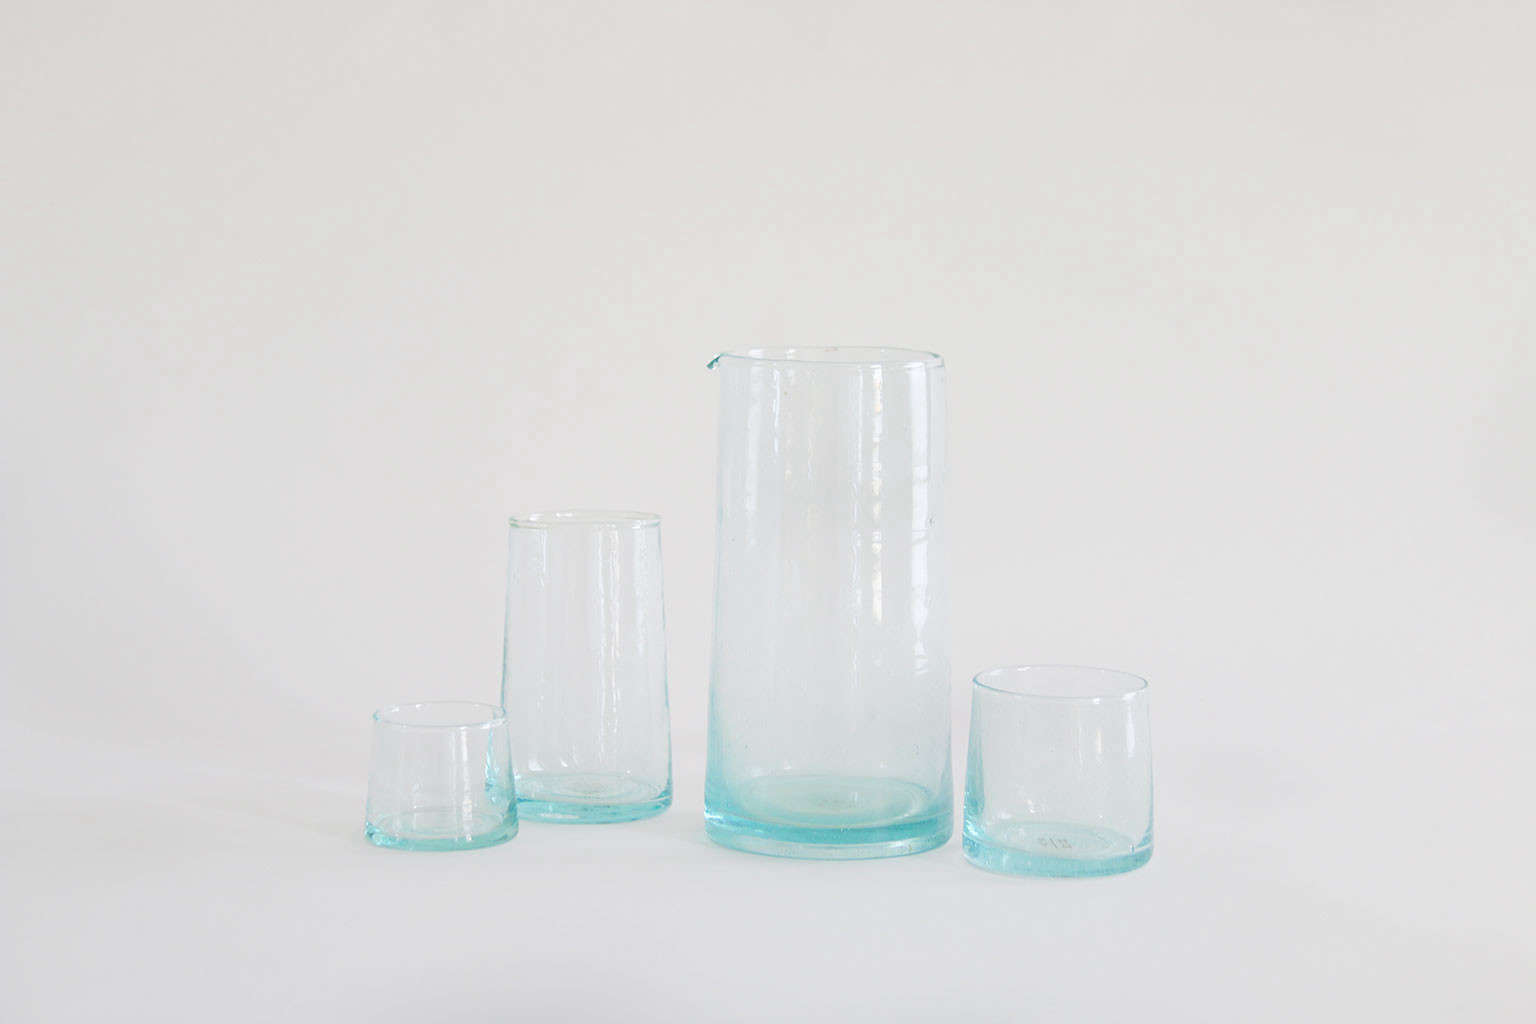 The Recycled Glassware by Hawkins New York starts at $3